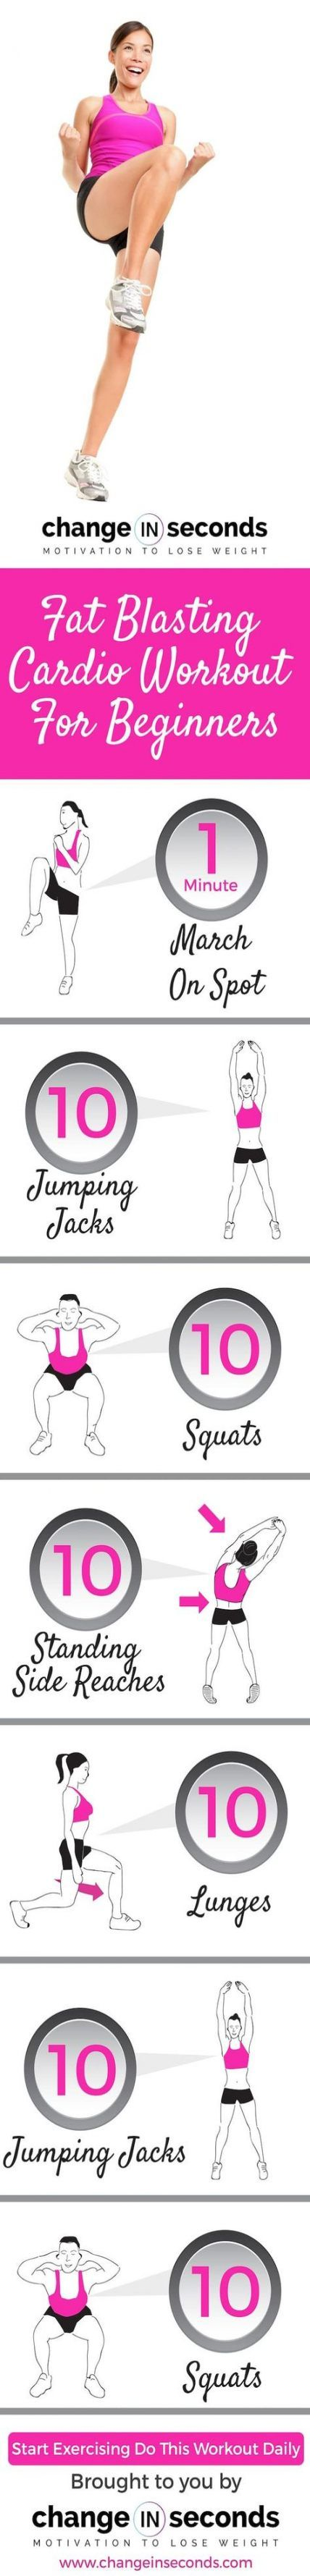 65+ Ideas for fitness tips for beginners cardio #fitness